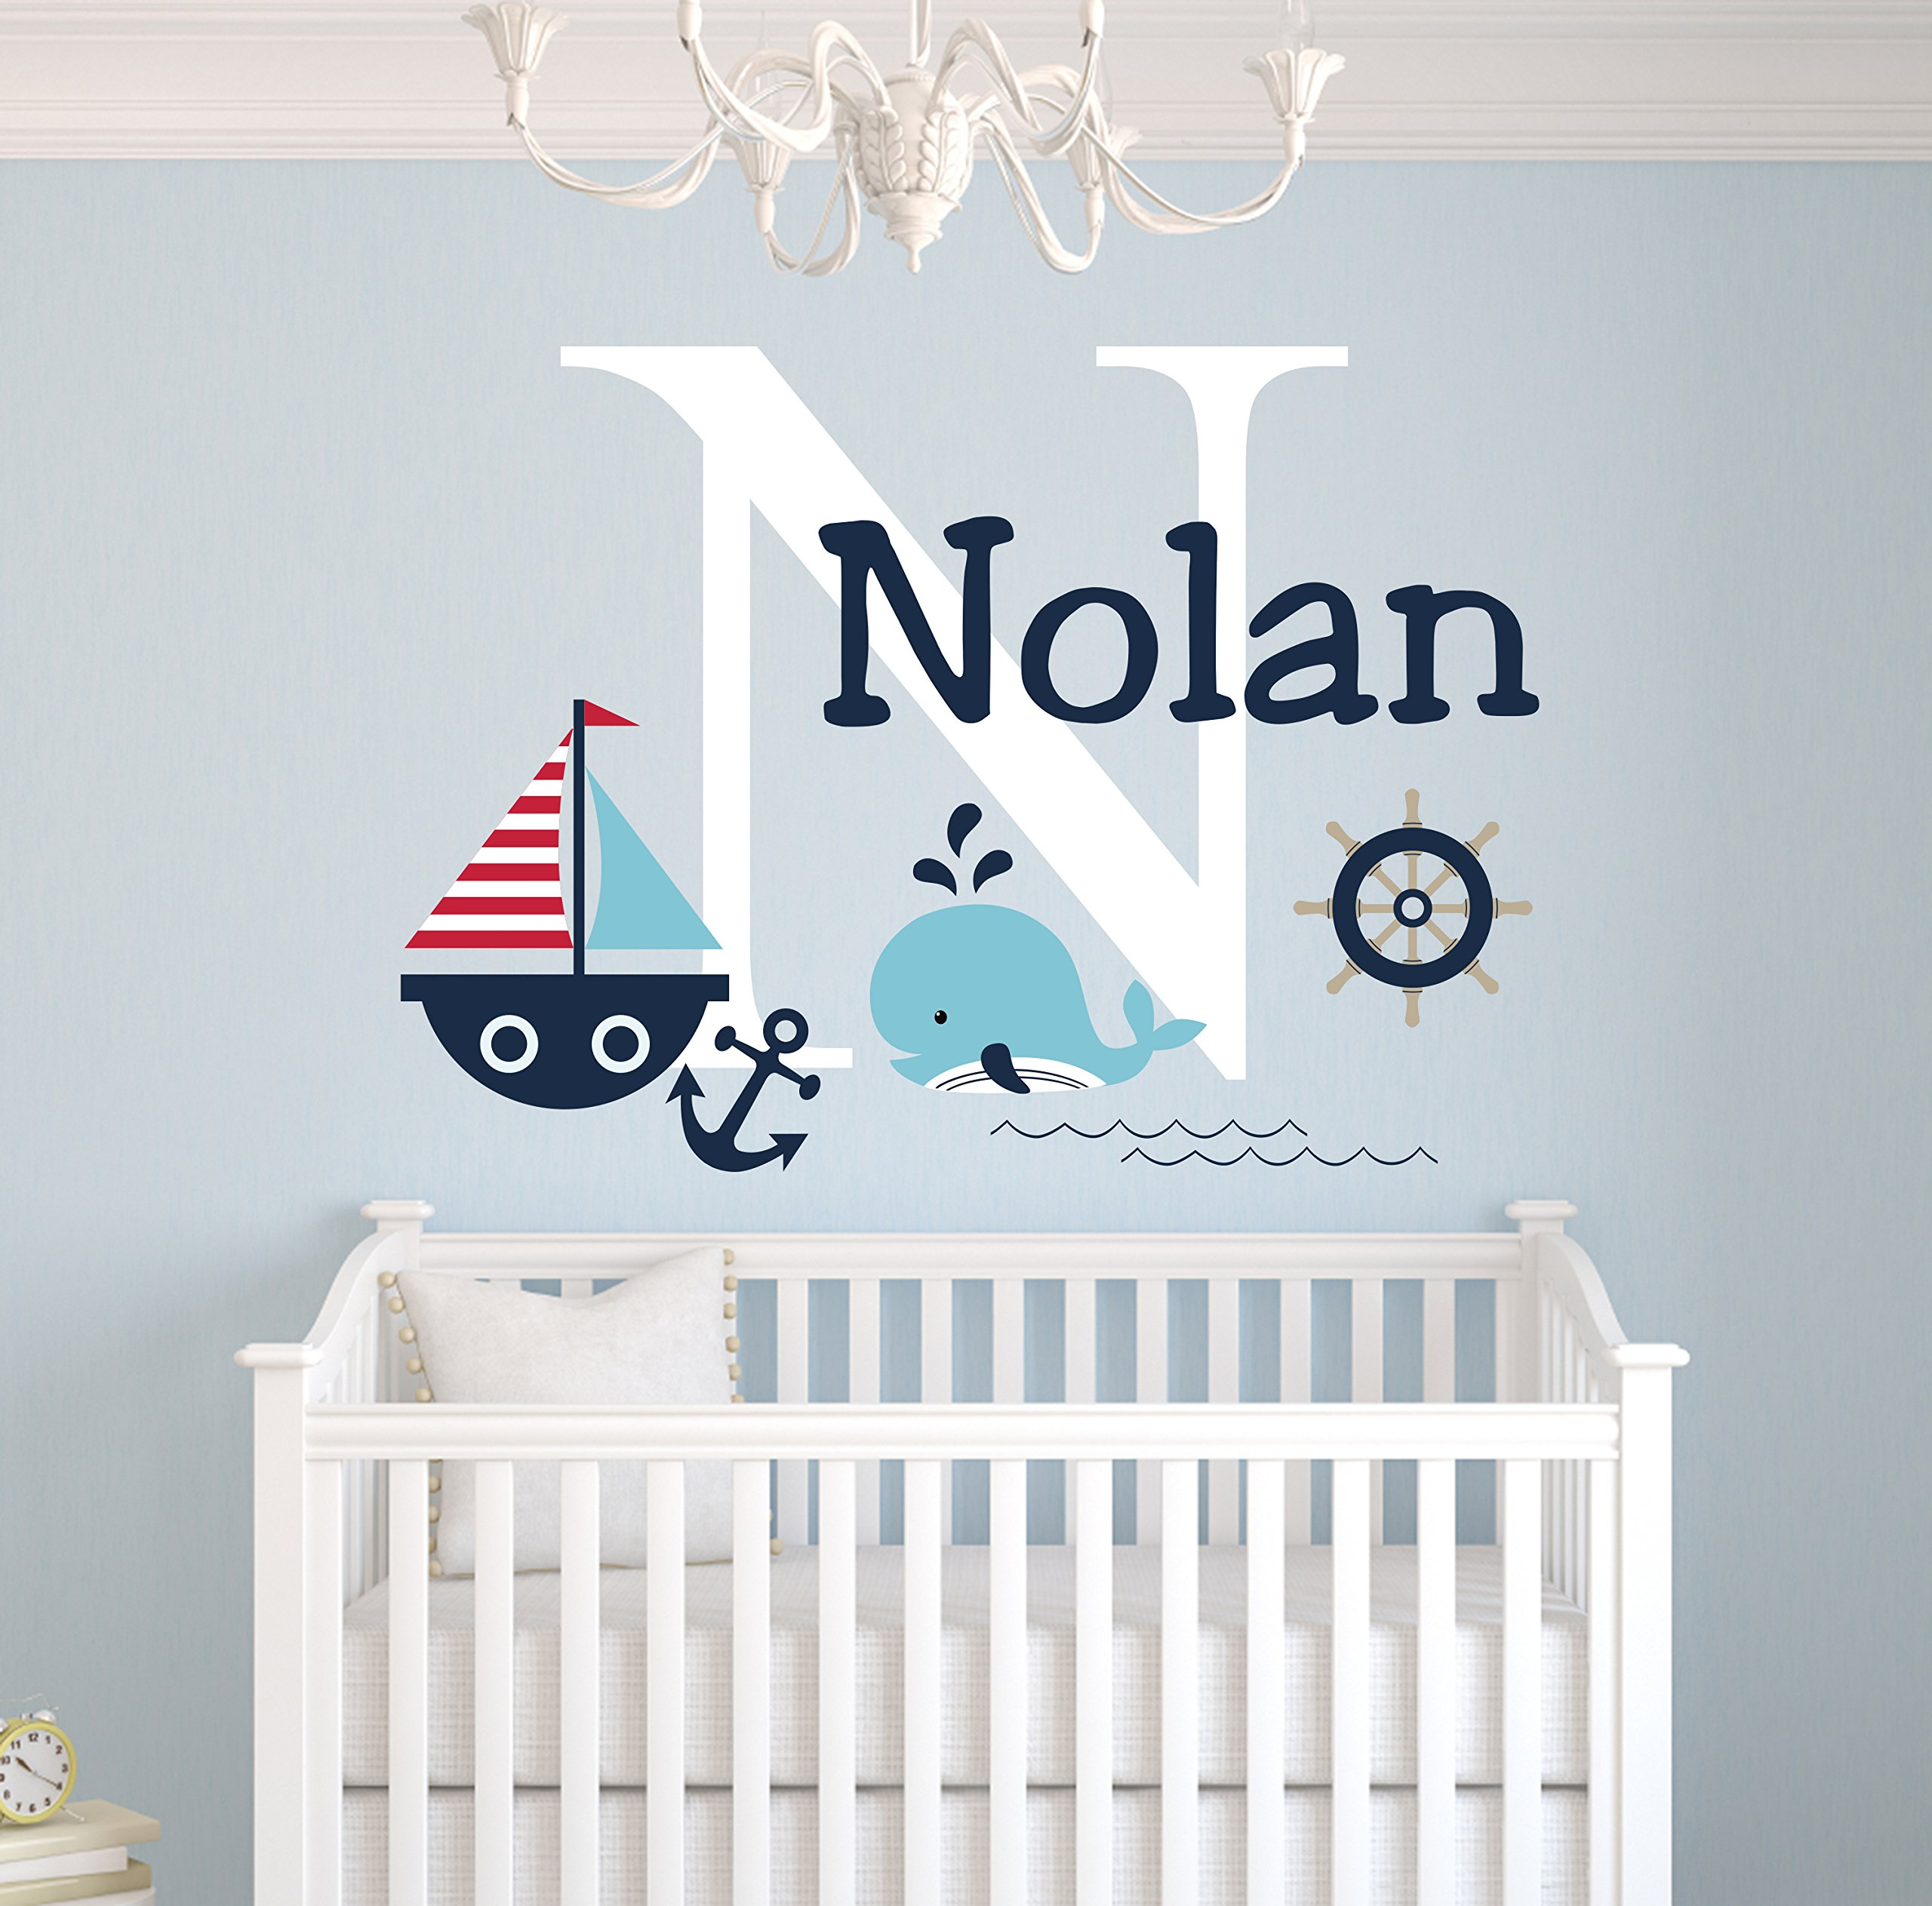 Personalized Nautical Theme Wall Decal - Nautical Decor - Nursery Wall Decals - Whale and Sailboat - Custom Vinyl Baby Nursery Decor